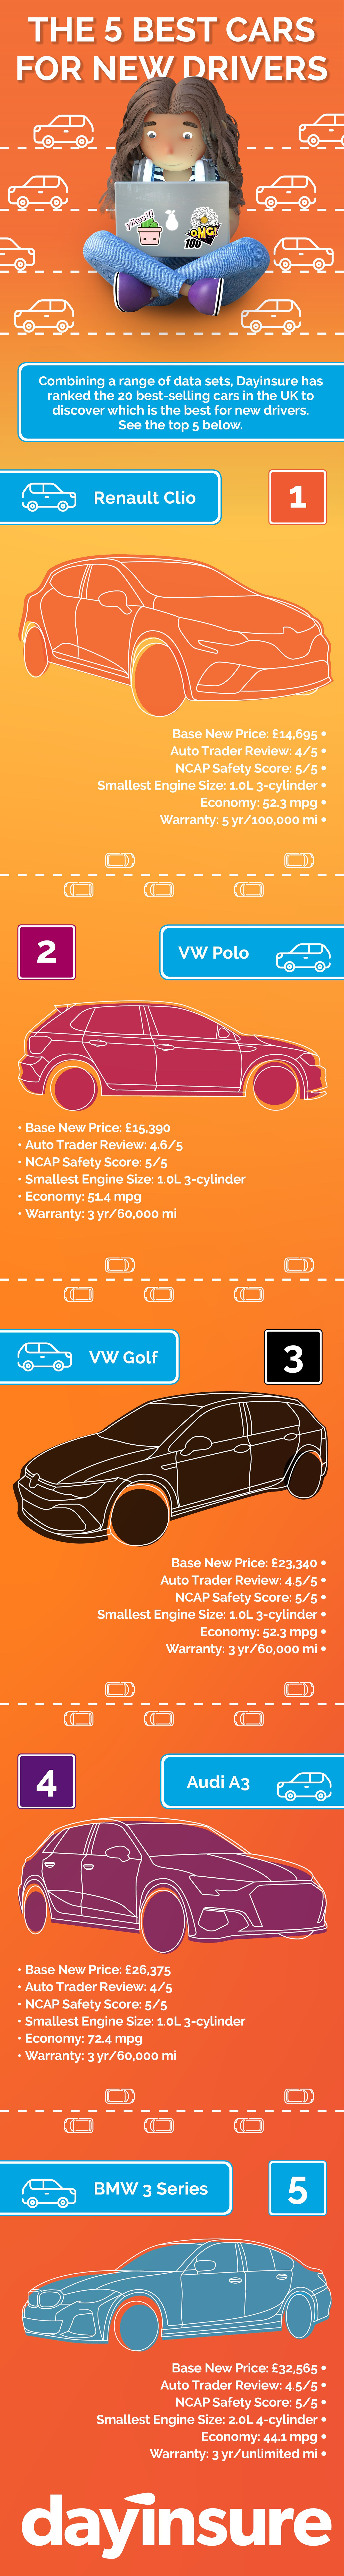 the best cars for new drivers infographic